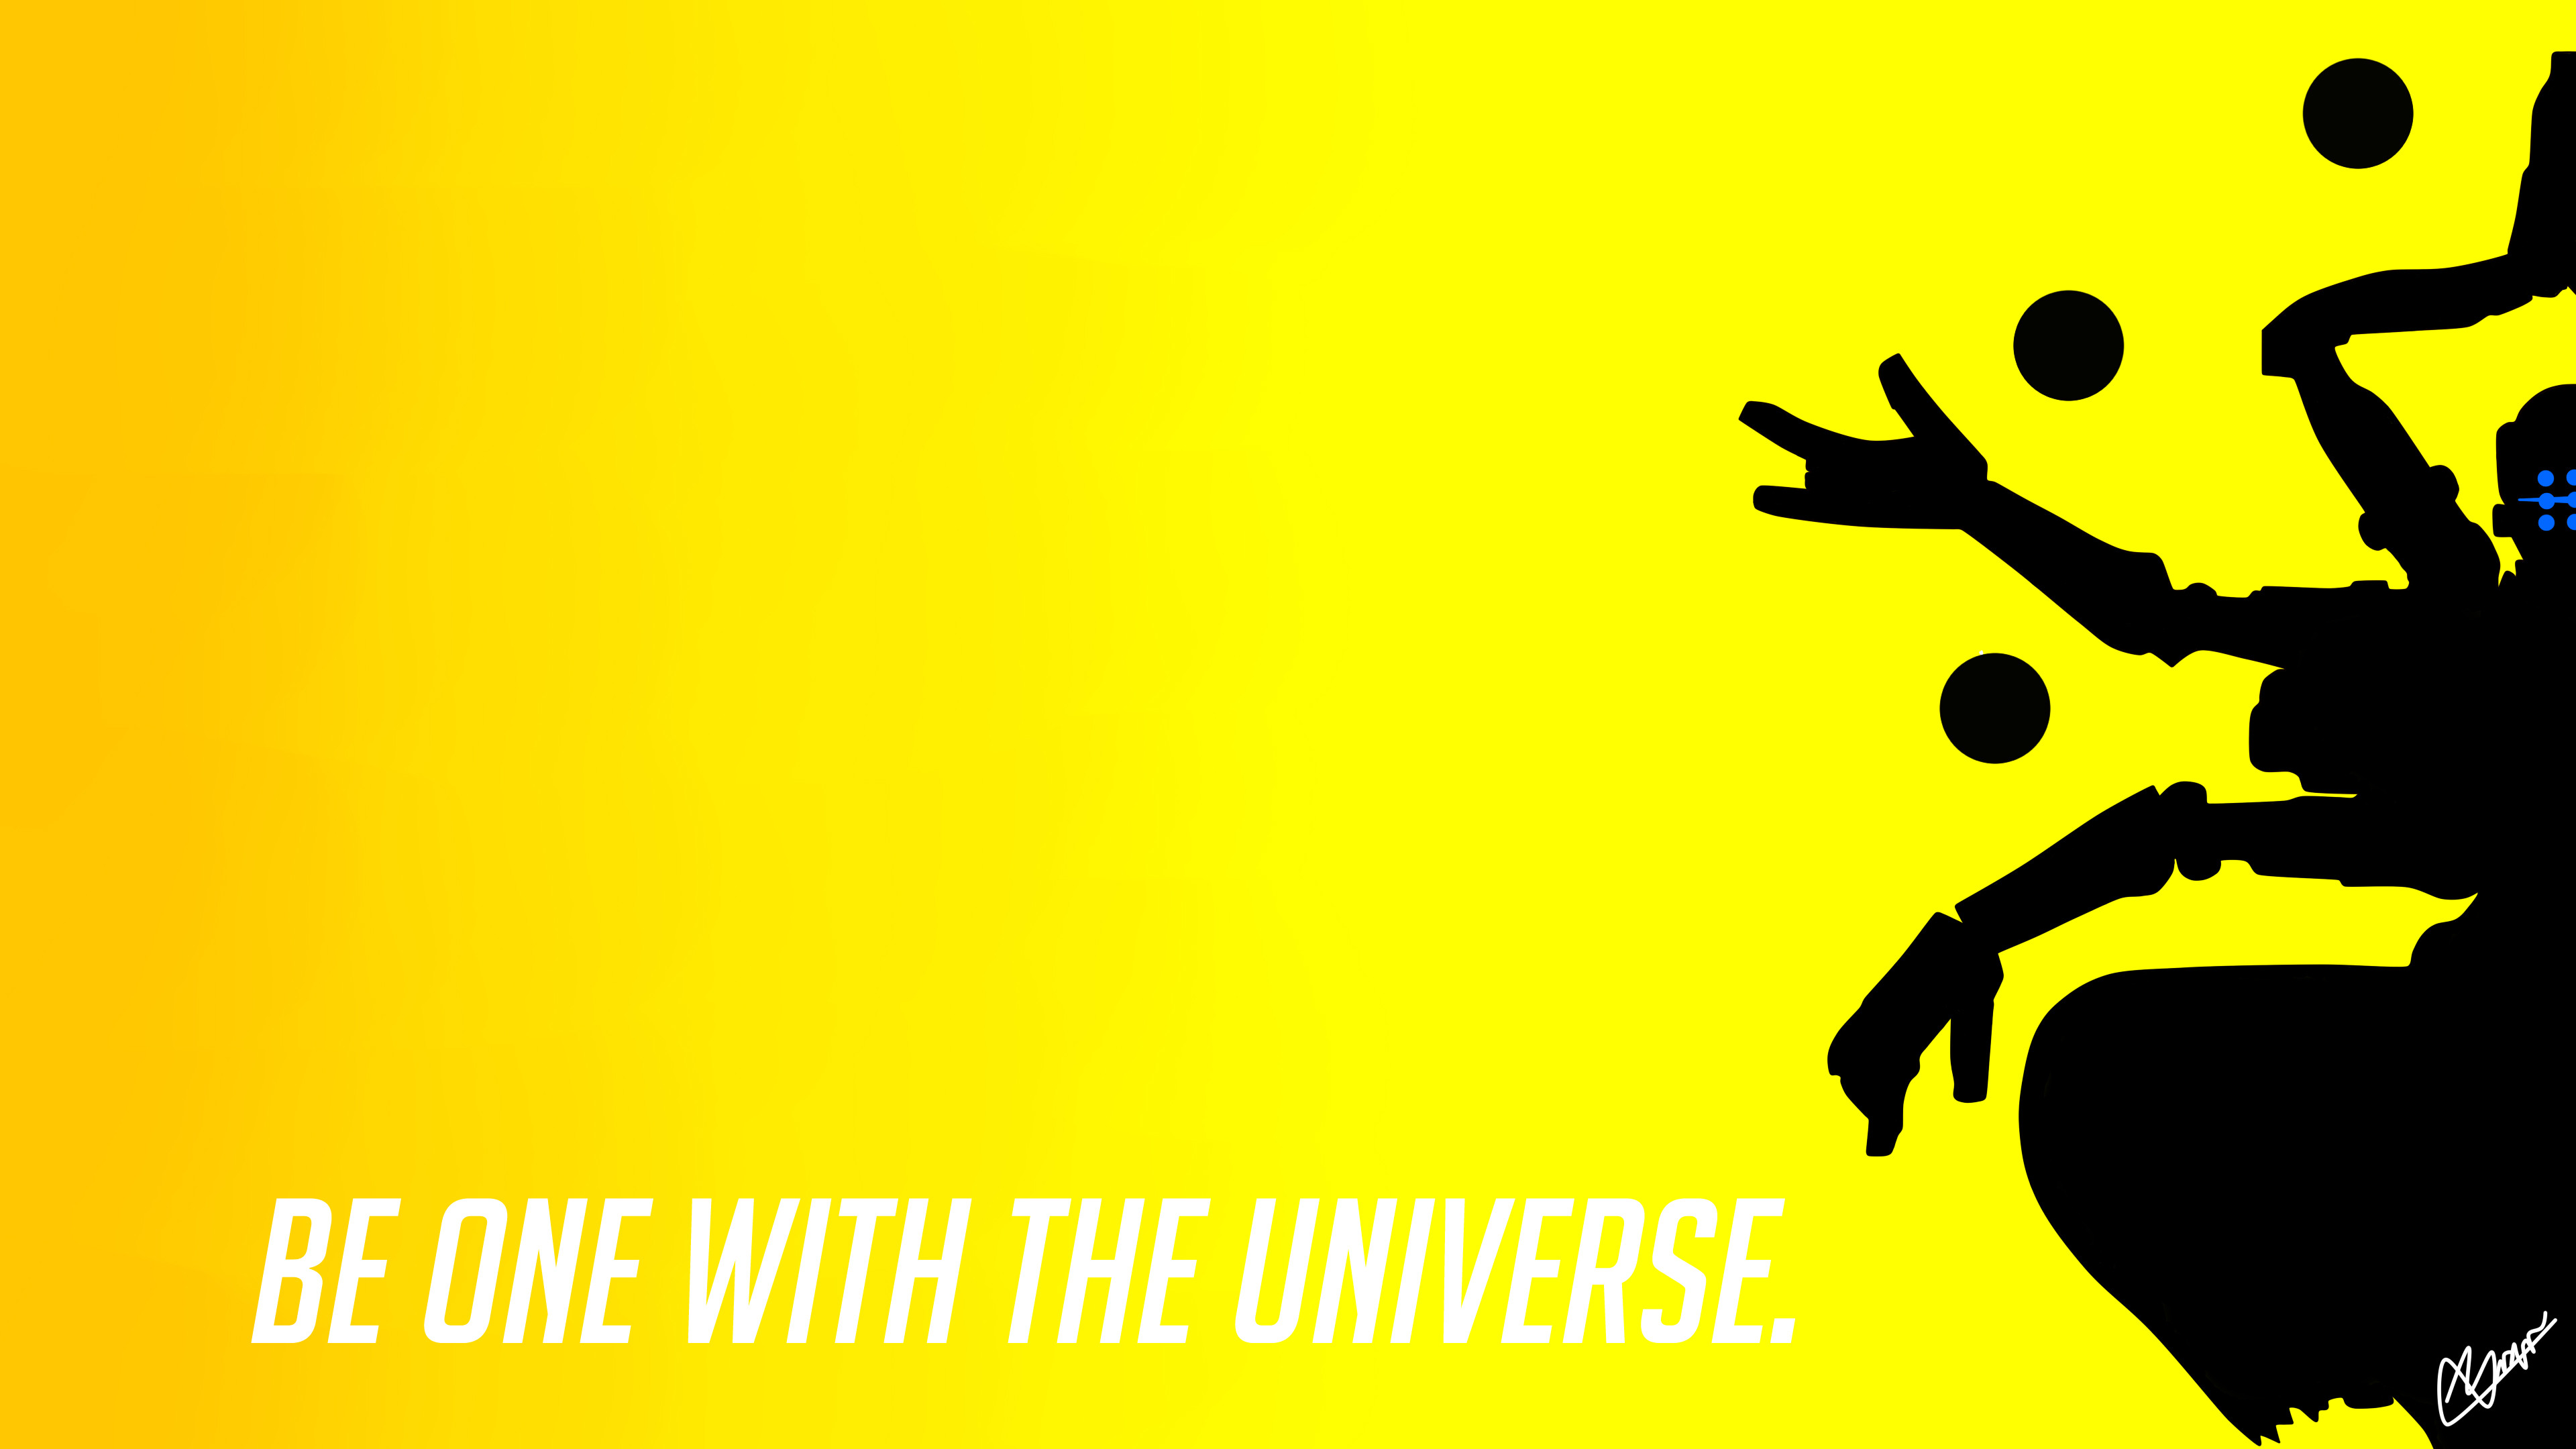 3840x2160 Minimalist Wallpaper Of Zenyatta by KorvoZ Minimalist Wallpaper Of Zenyatta  by KorvoZ